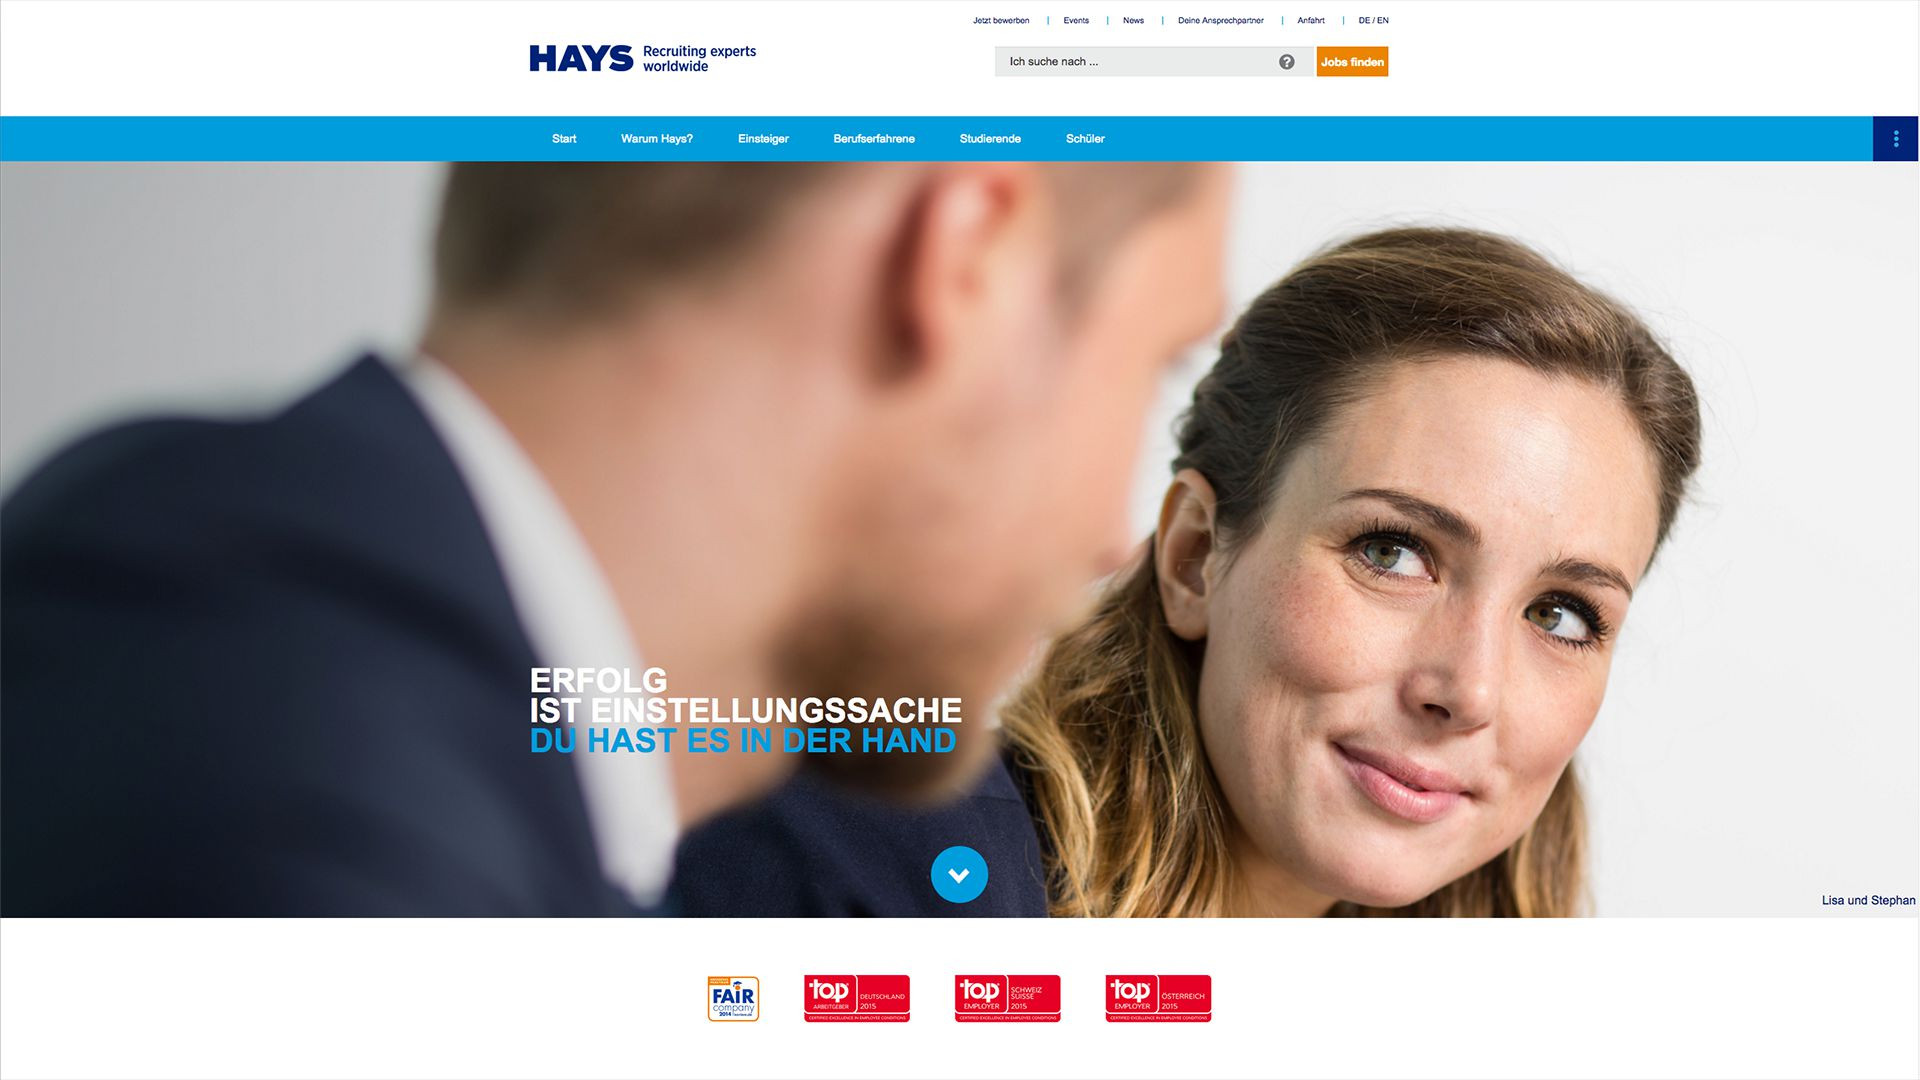 Neues Keyvisual nach dem Website Redesign von hayscareer.net